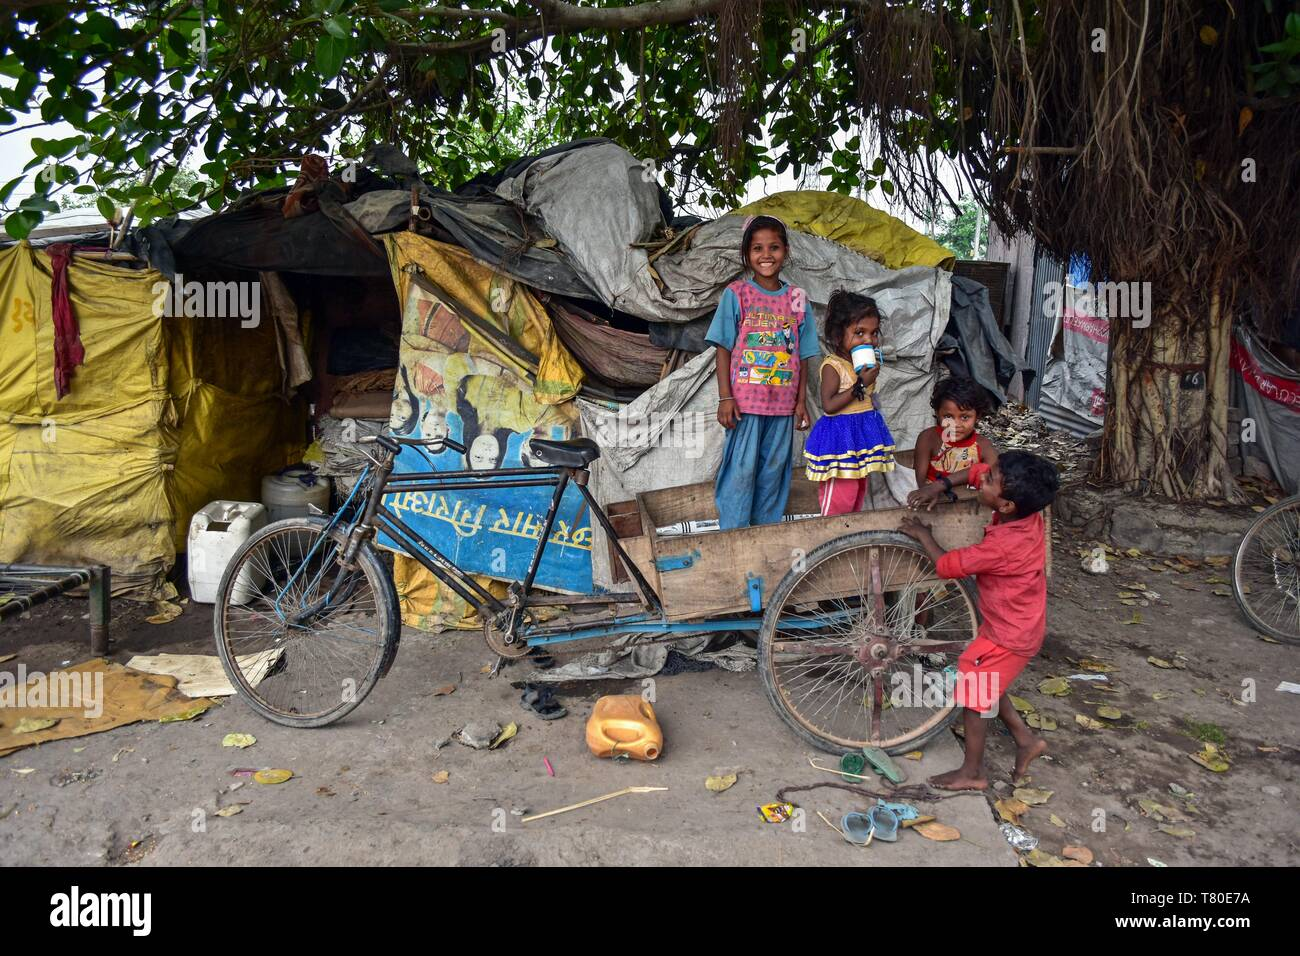 May 9, 2019 - Punjab, Punjab, India - Children are seen playing on a